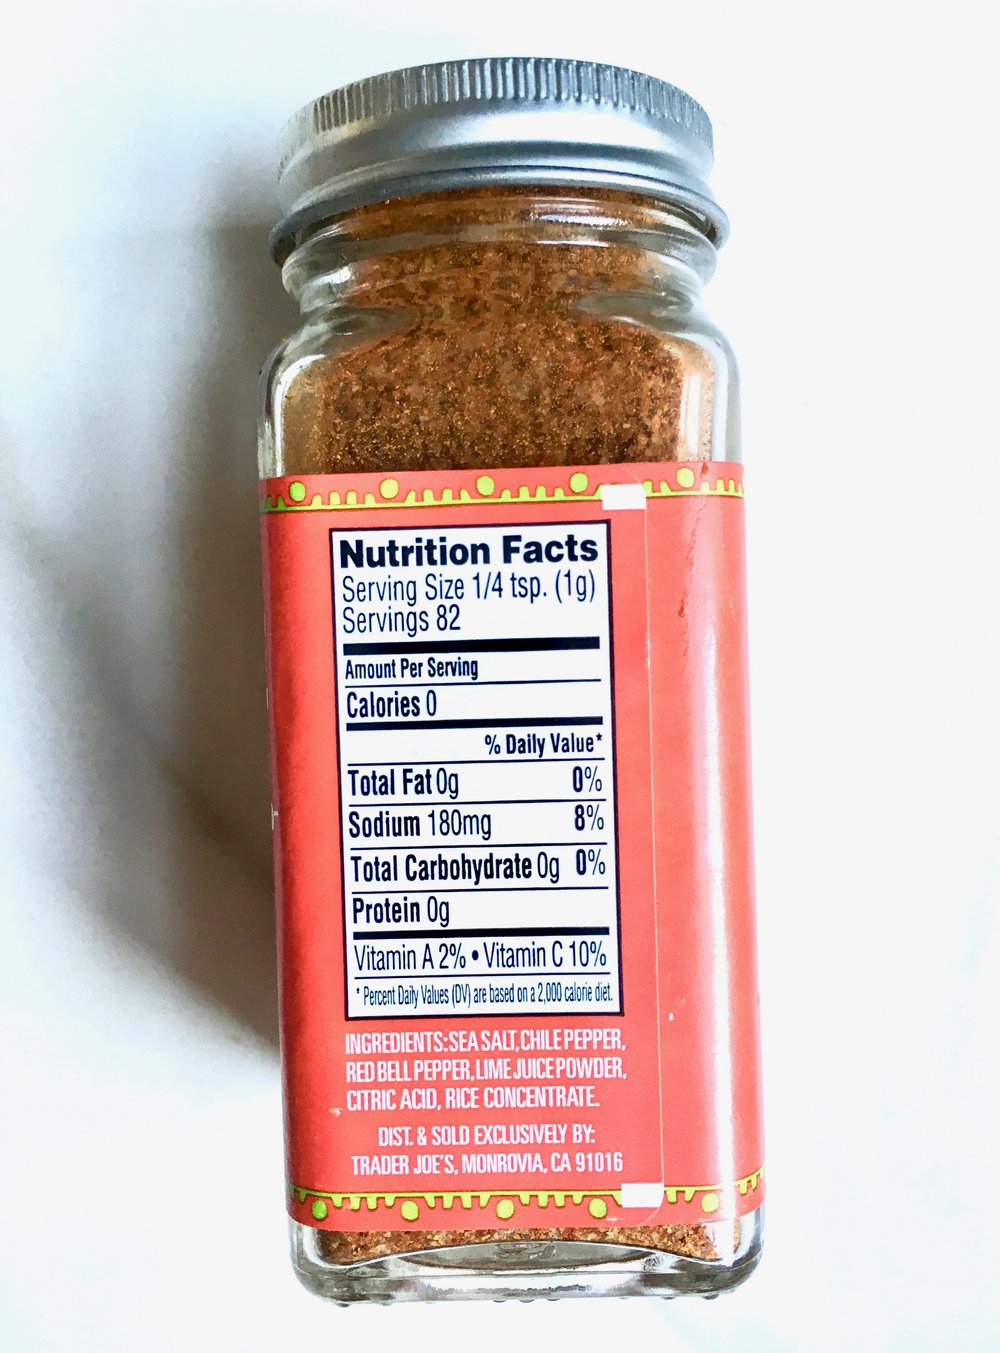 Sharing this incase you don't have a TJ's near you! Just mix the spices in the ingredients list together :)